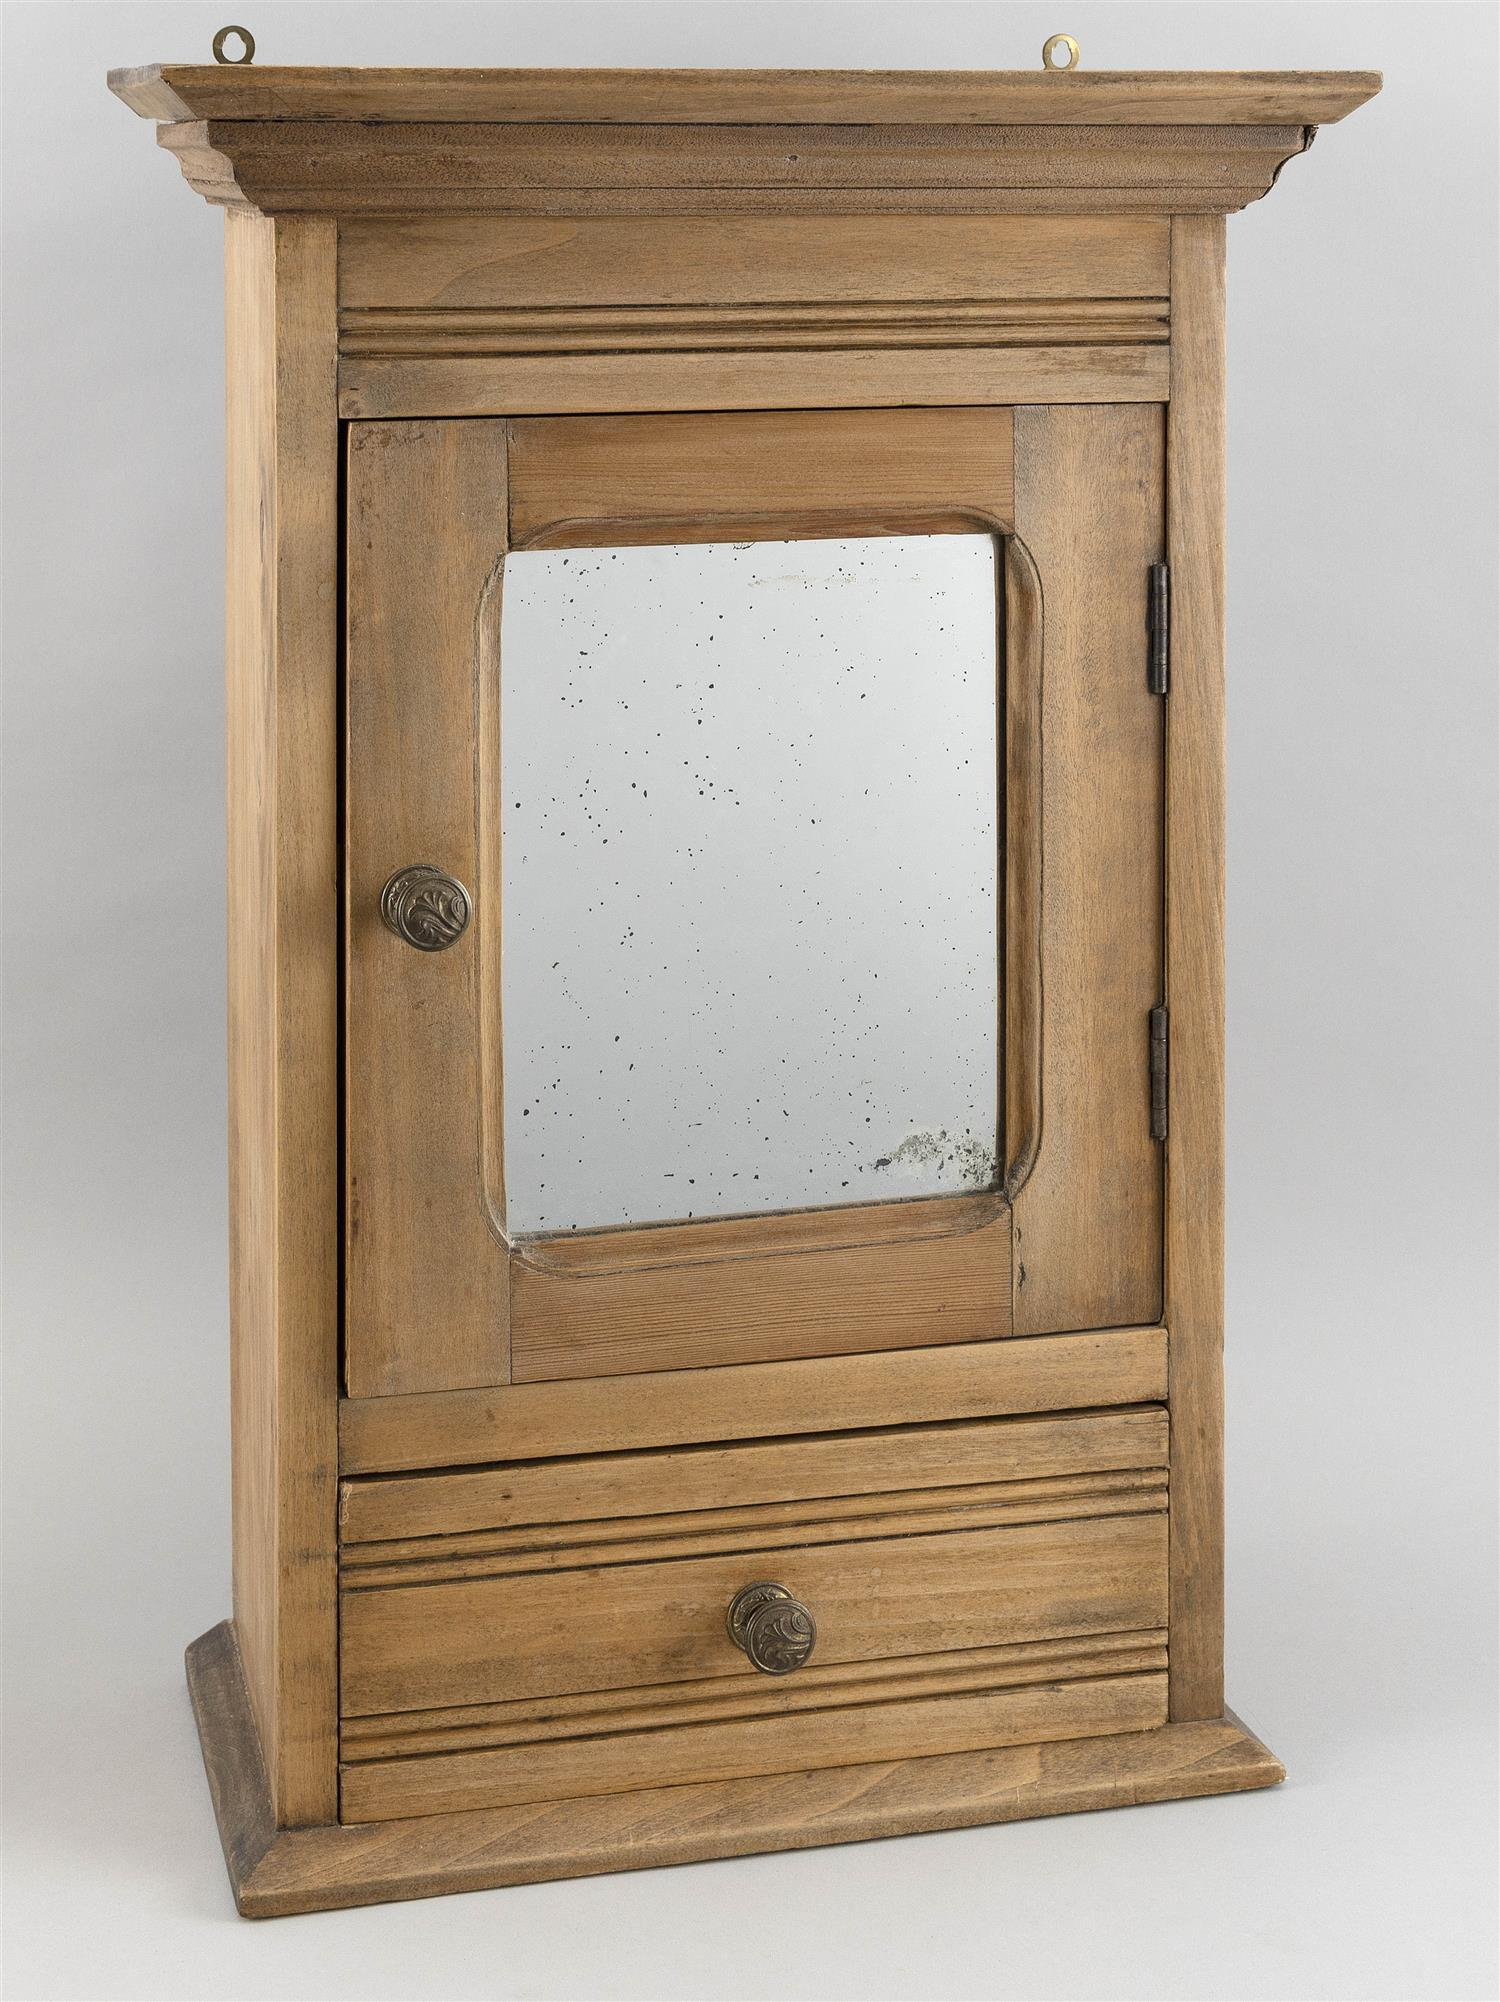 """SMALL HANGING CABINET In poplar under a natural finish. Paneled door with an inset mirror over a single drawer. Height 21.5"""". Width..."""